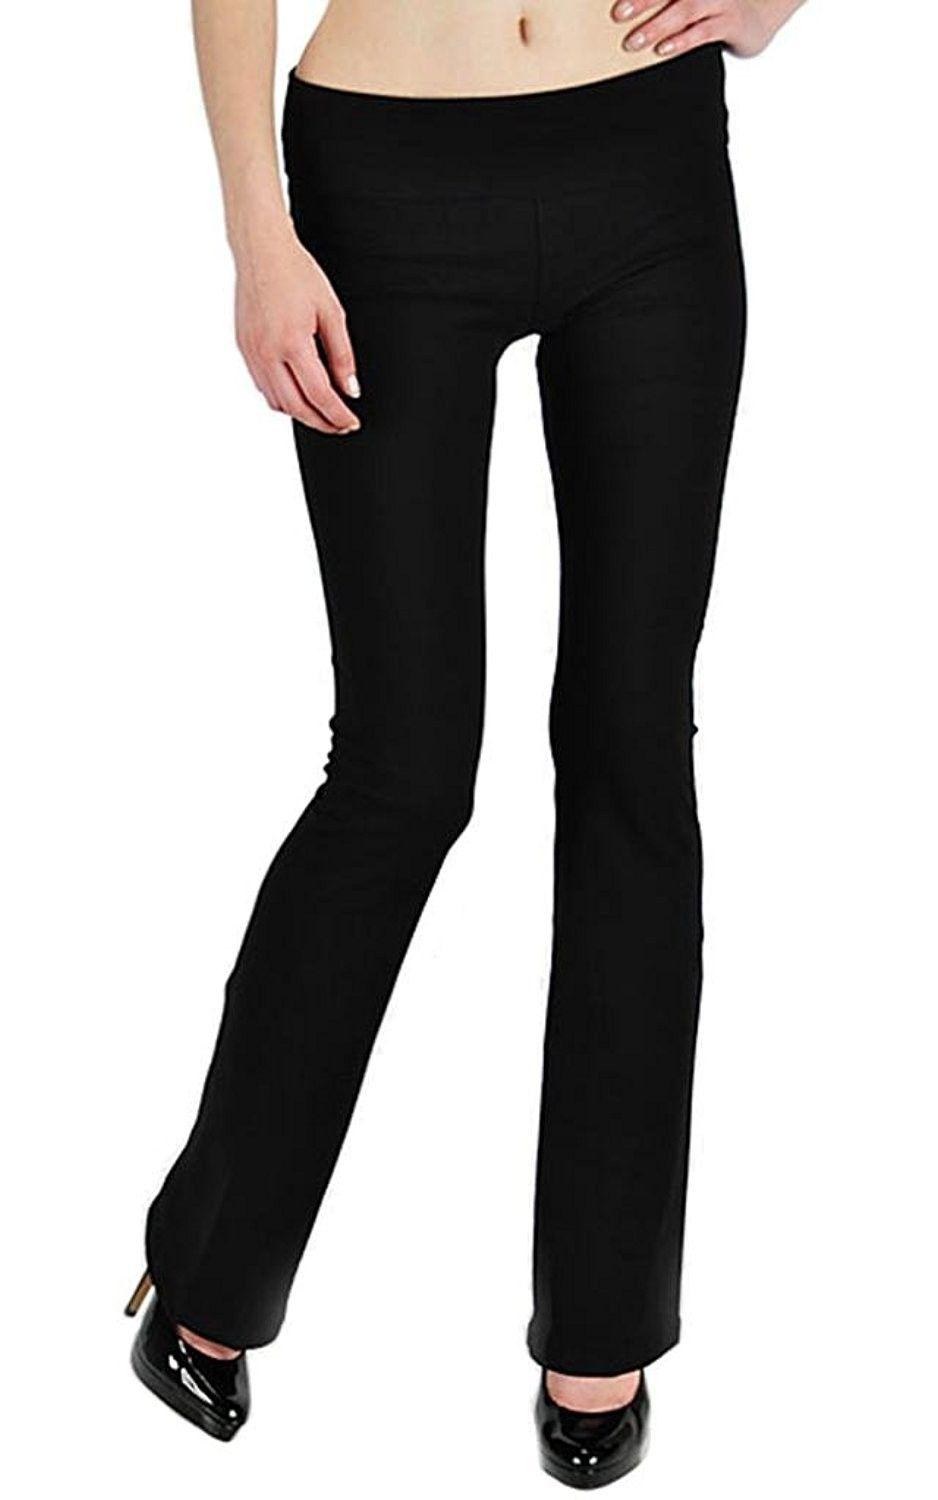 T Party Thick Cotton Yoga Pants With Fold Over Waistband Tall Long Flare Bootcut Legs Not See Through Black C011uq52zch Cotton Yoga Pants Pants Yoga Pants Fashion